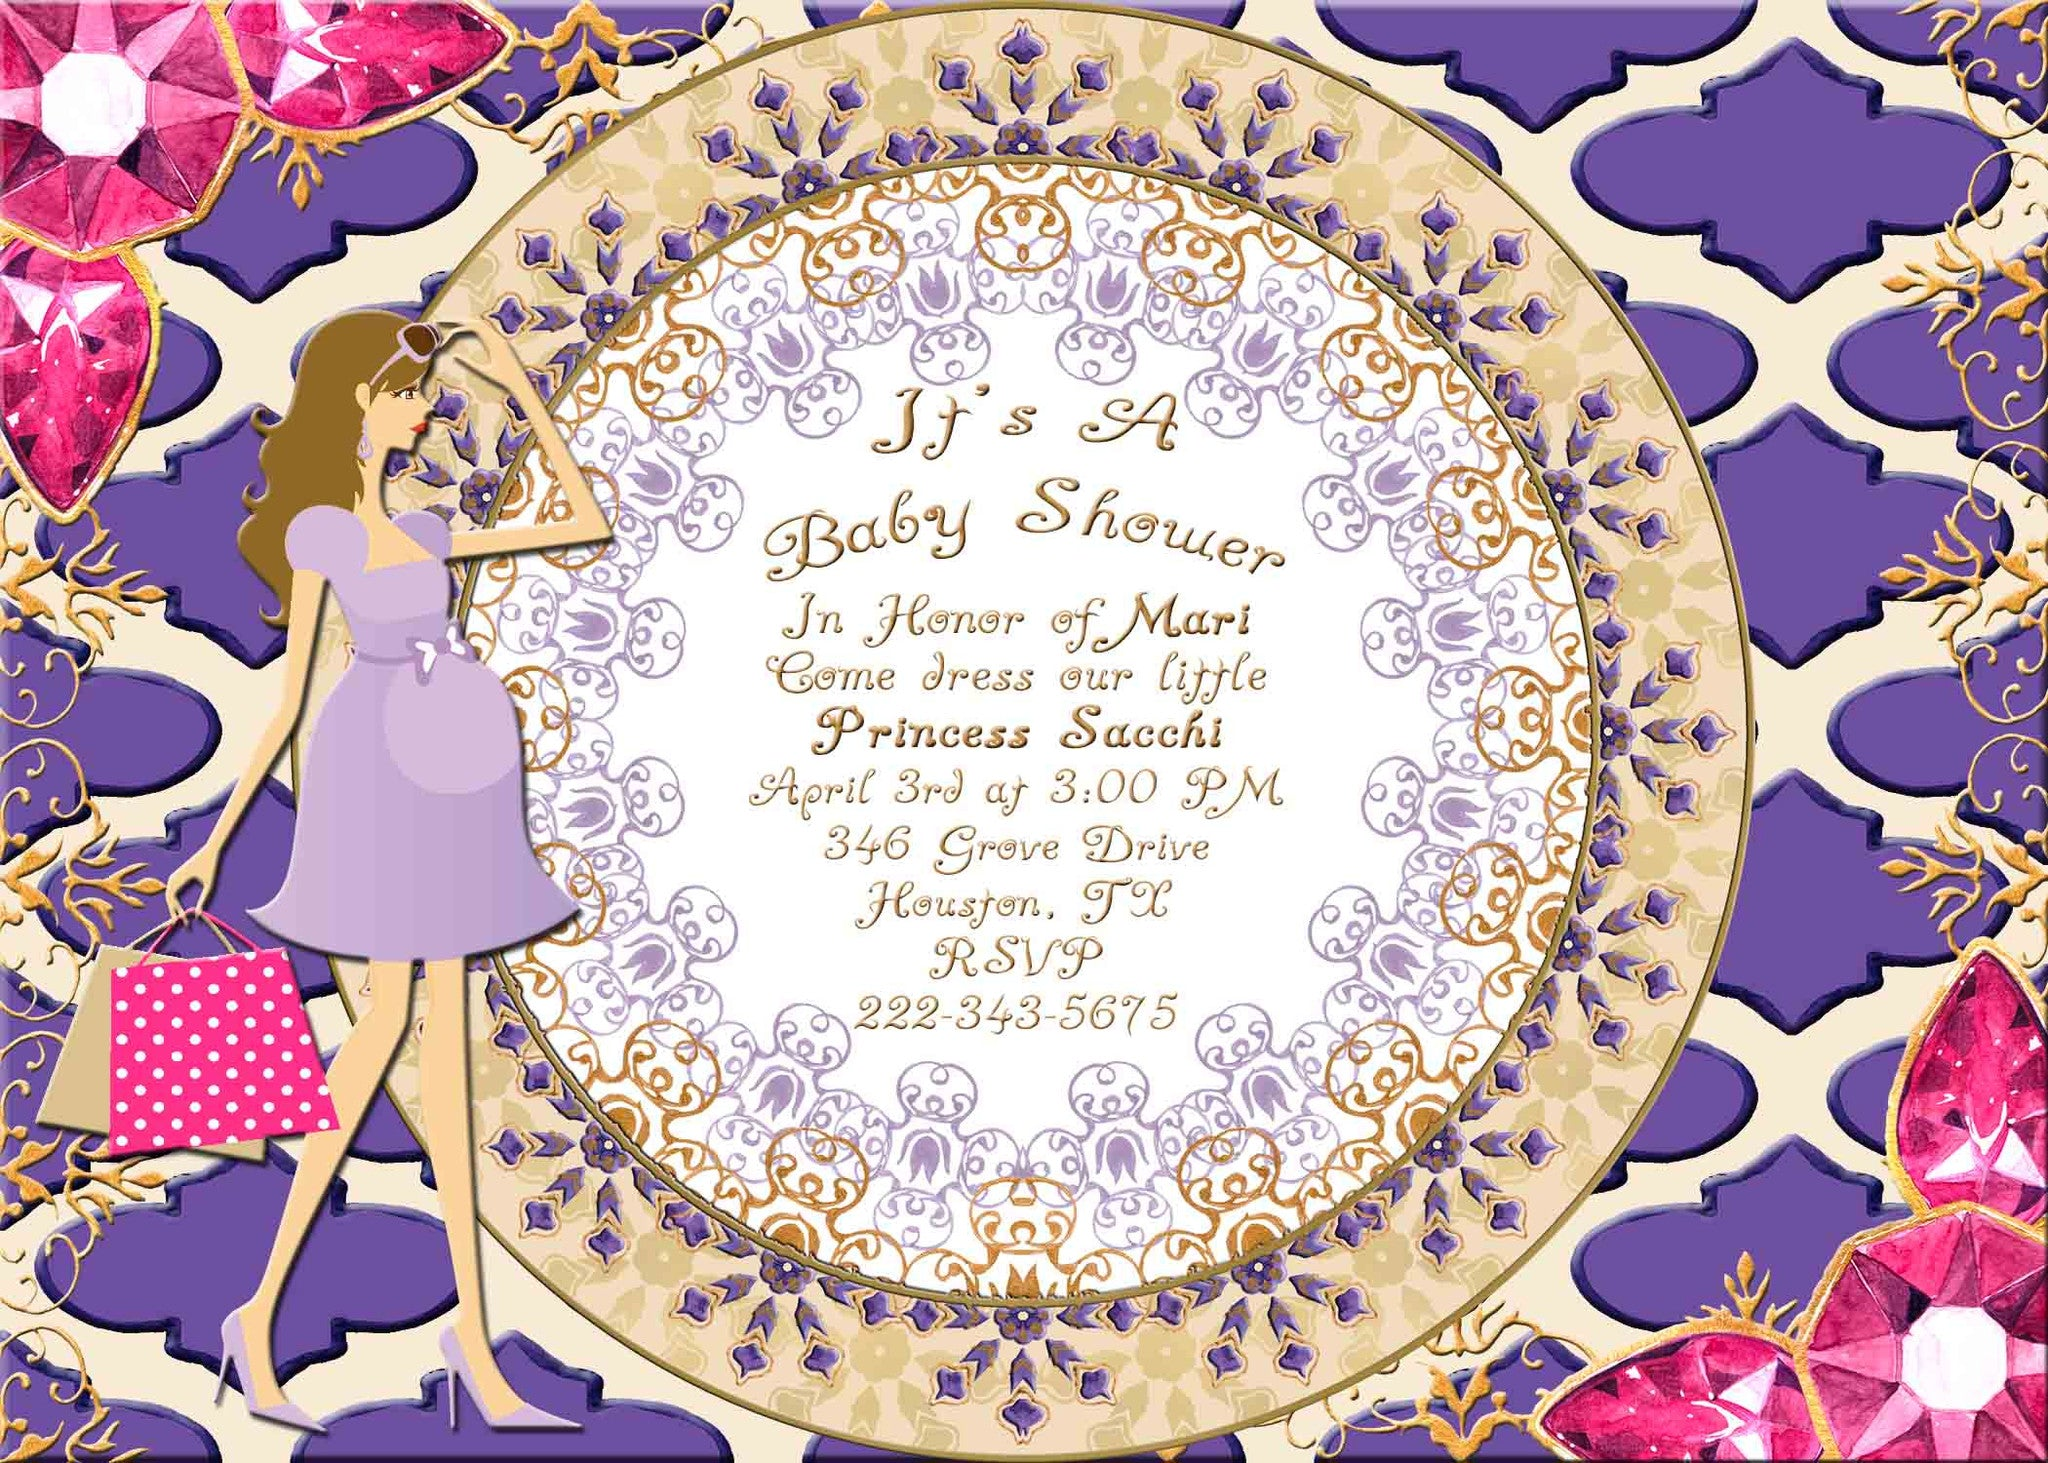 Moroccan Indian Jewels Brunette Haired Pregnant Lady Baby Shower Invitation - Custom Printable - Invites and Delites